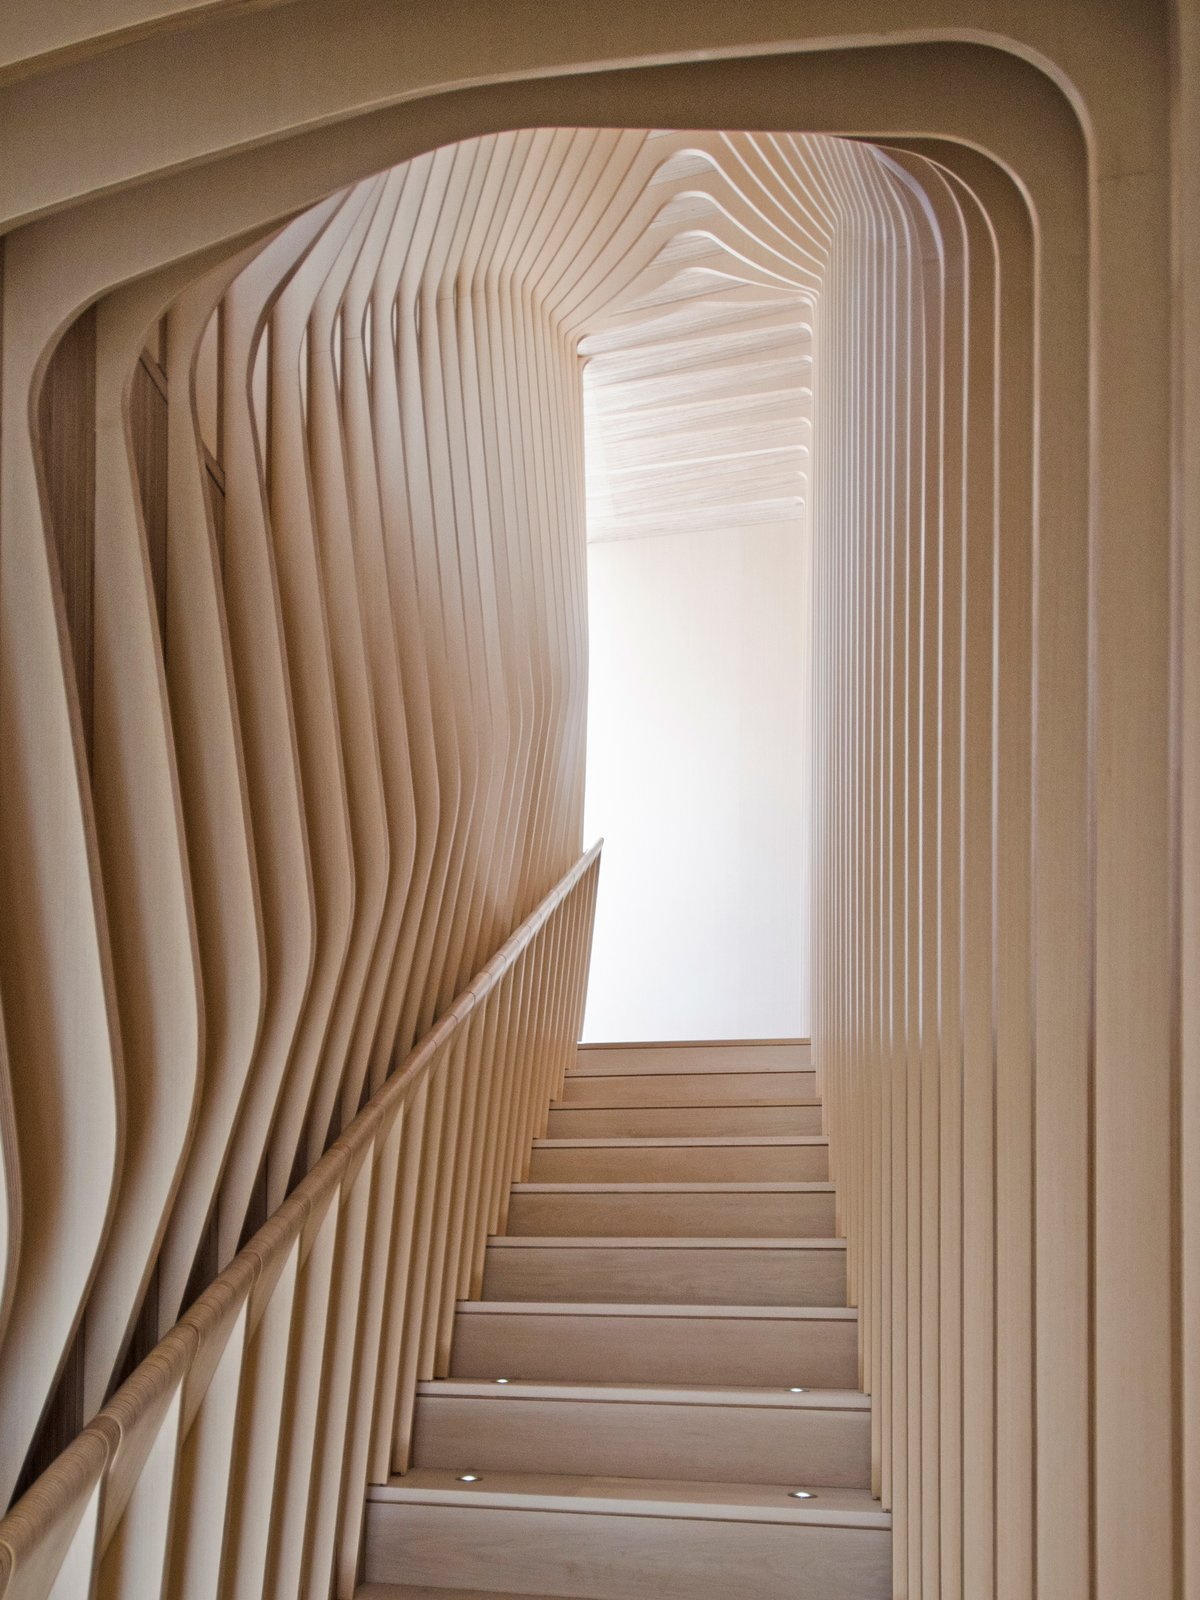 Though they give the appearance of bent plywood, each curved layer of the ribbed corridor was constructed with flat, laminated cutouts, including the rounded hand rail.  Photo 9 of 15 in What's the Twist Behind This Home's Sinuous Staircase? Ordinary Plywood